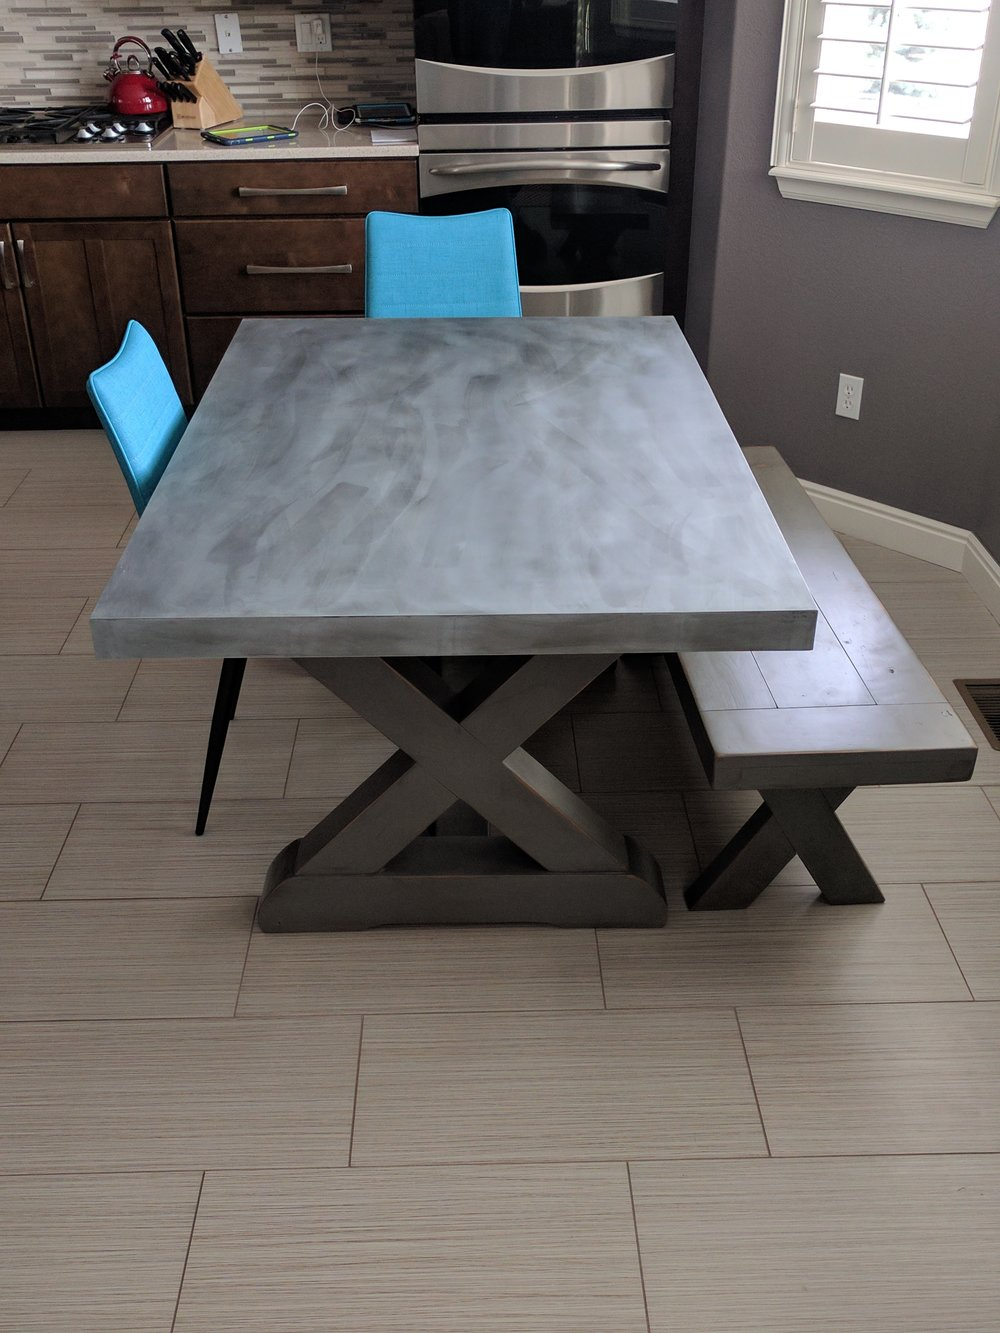 Top: Zinc with brush patina; Base and bench: Slate Gray